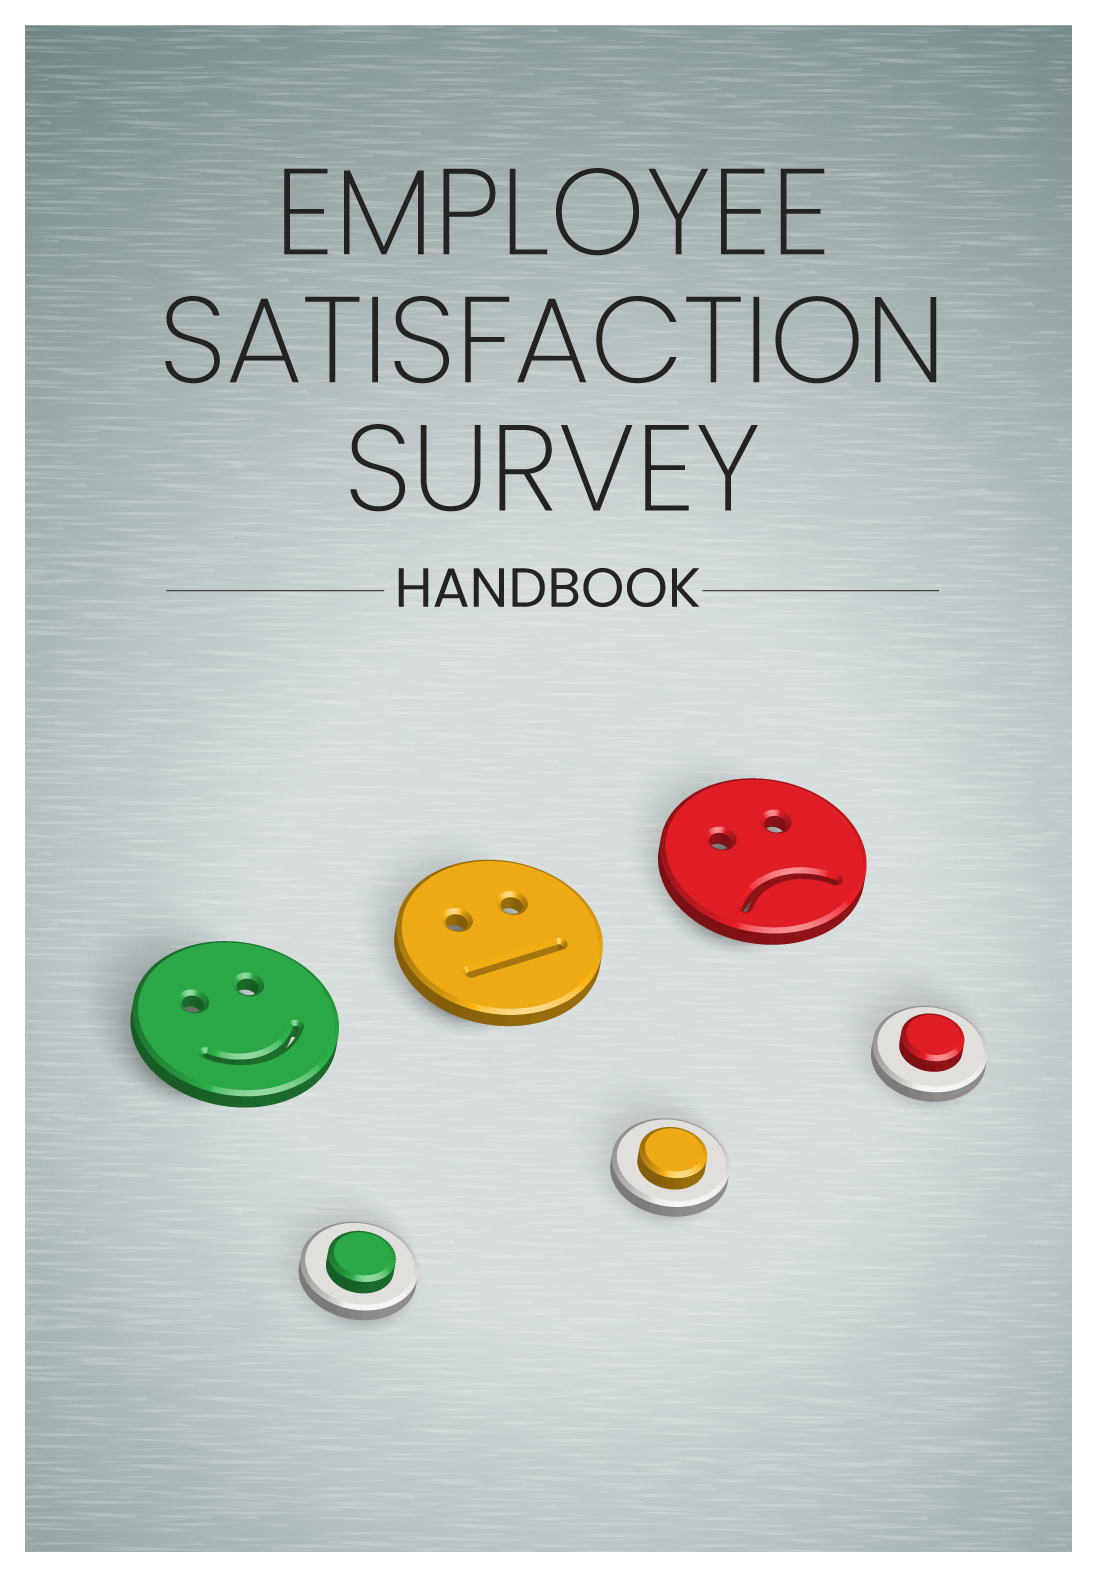 Employee Saticification Survey